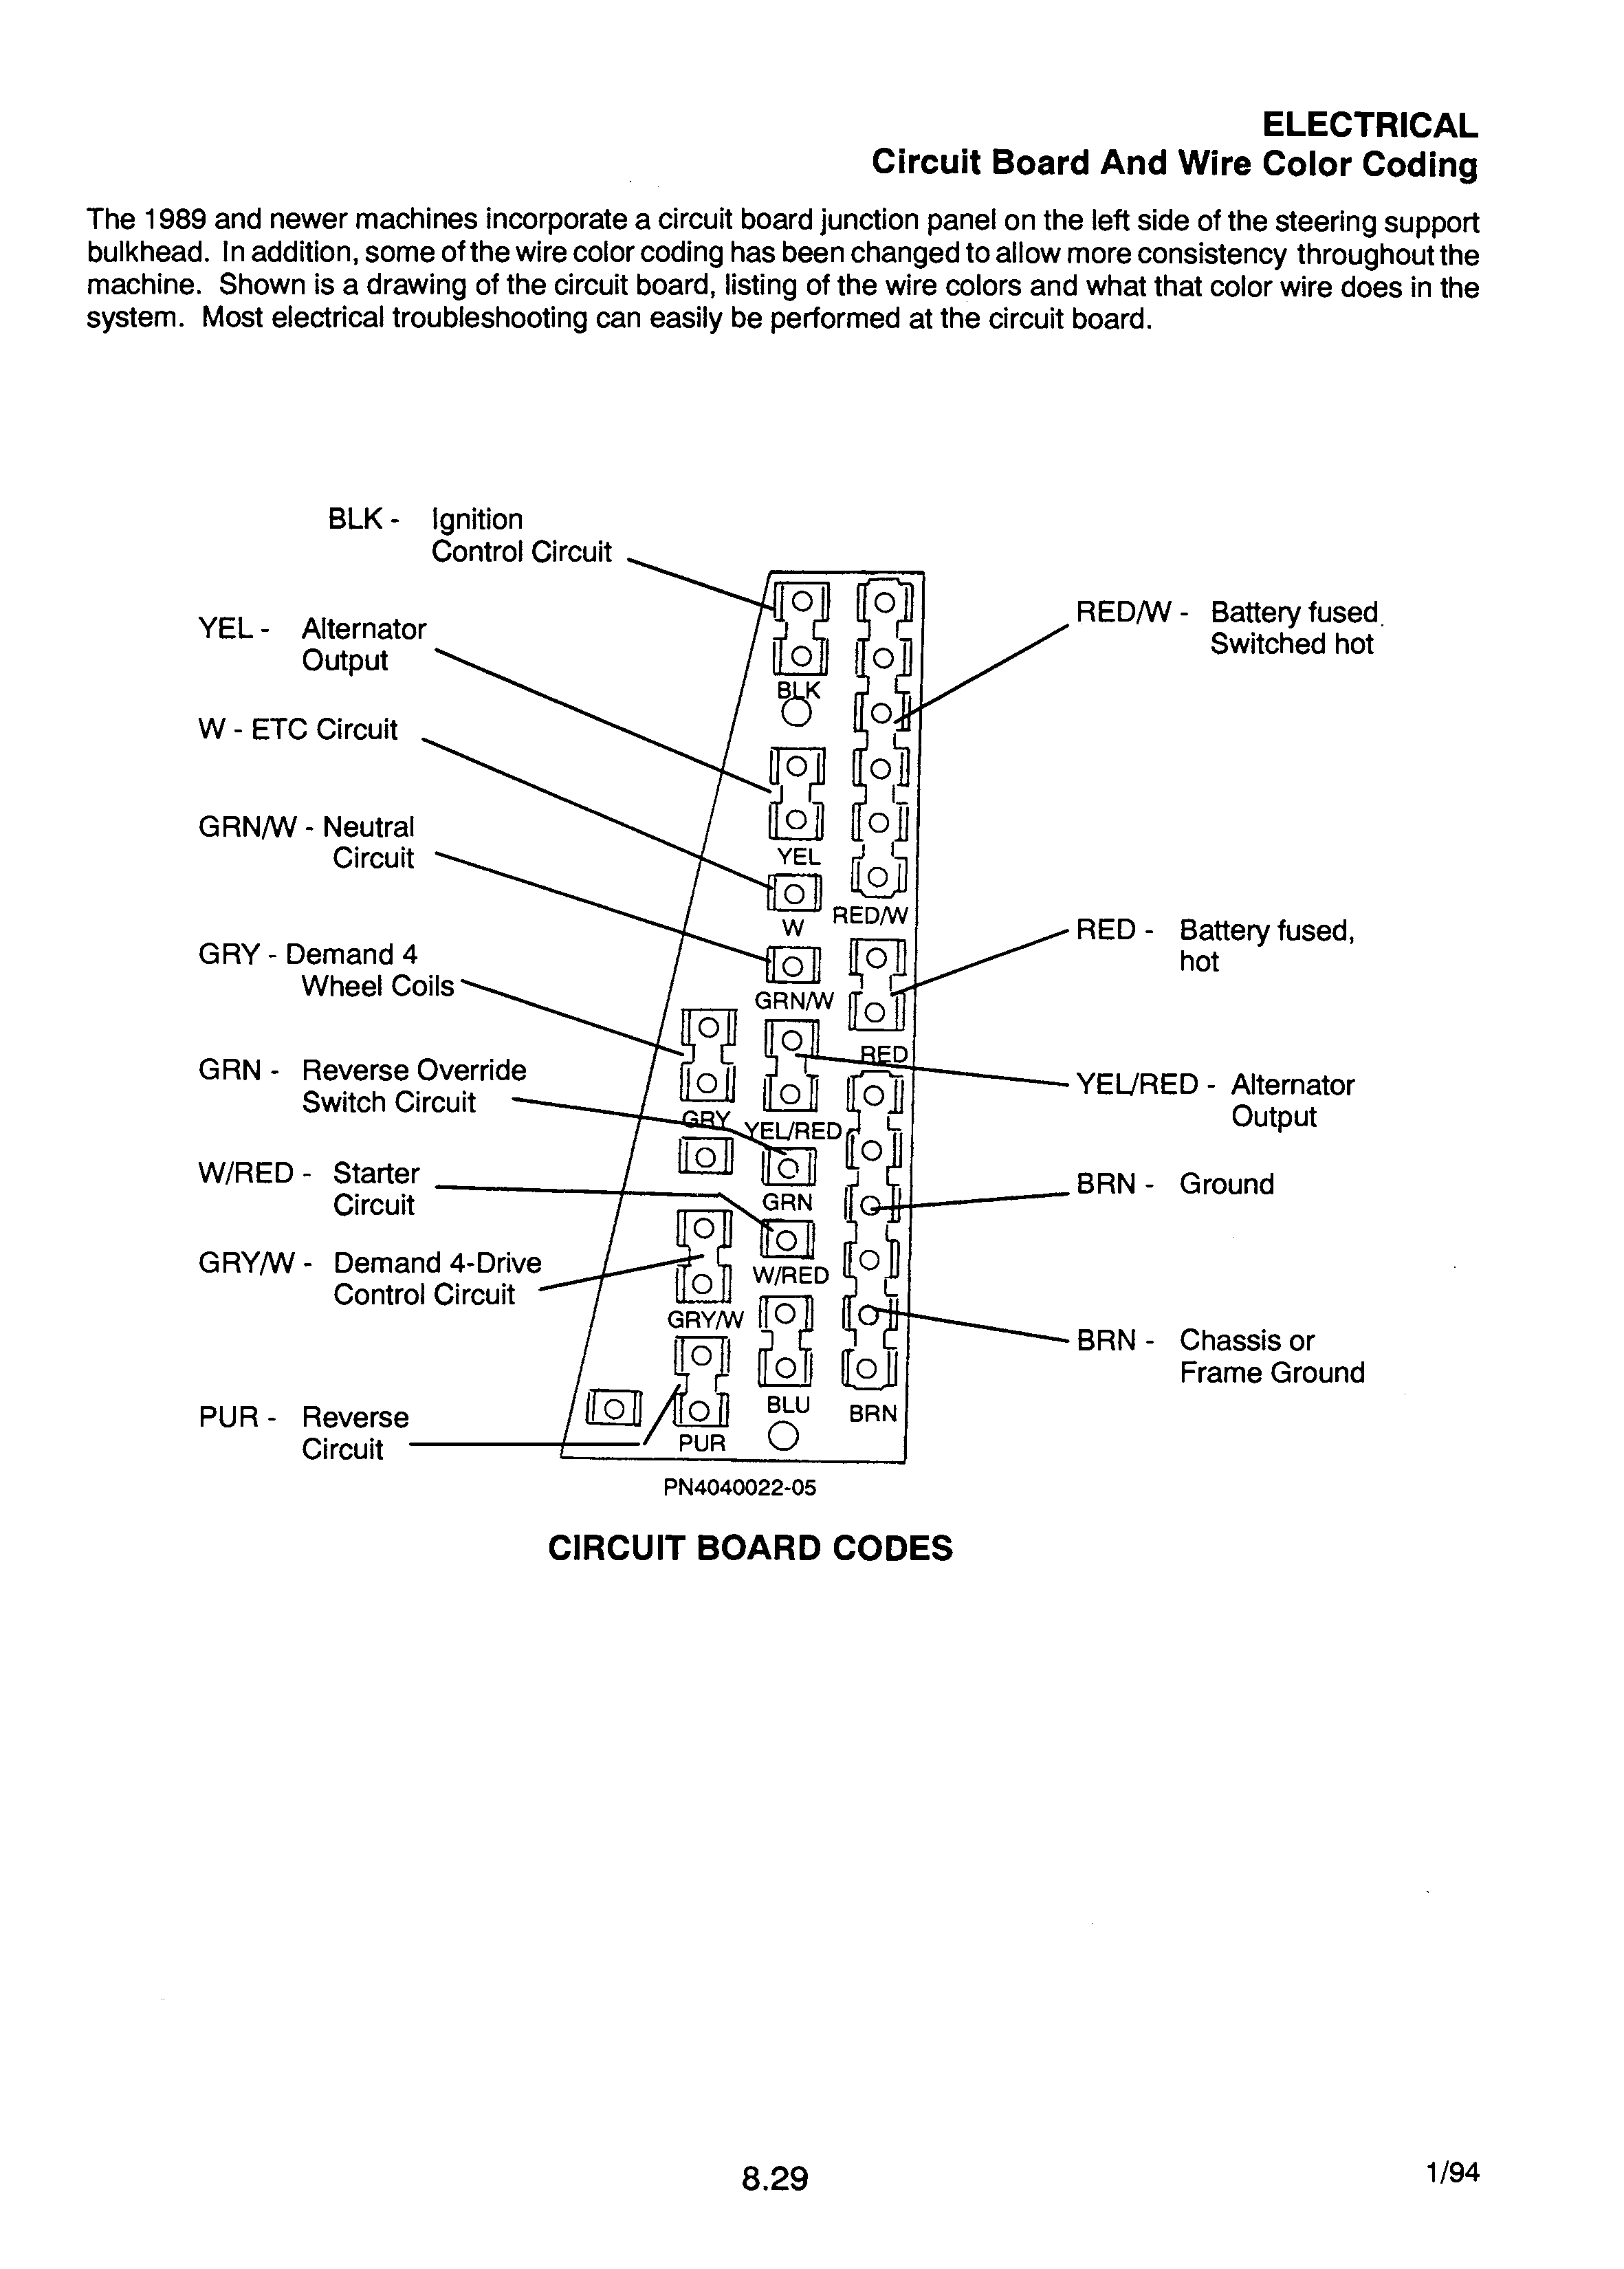 1994 Polari 400 Wiring Diagram